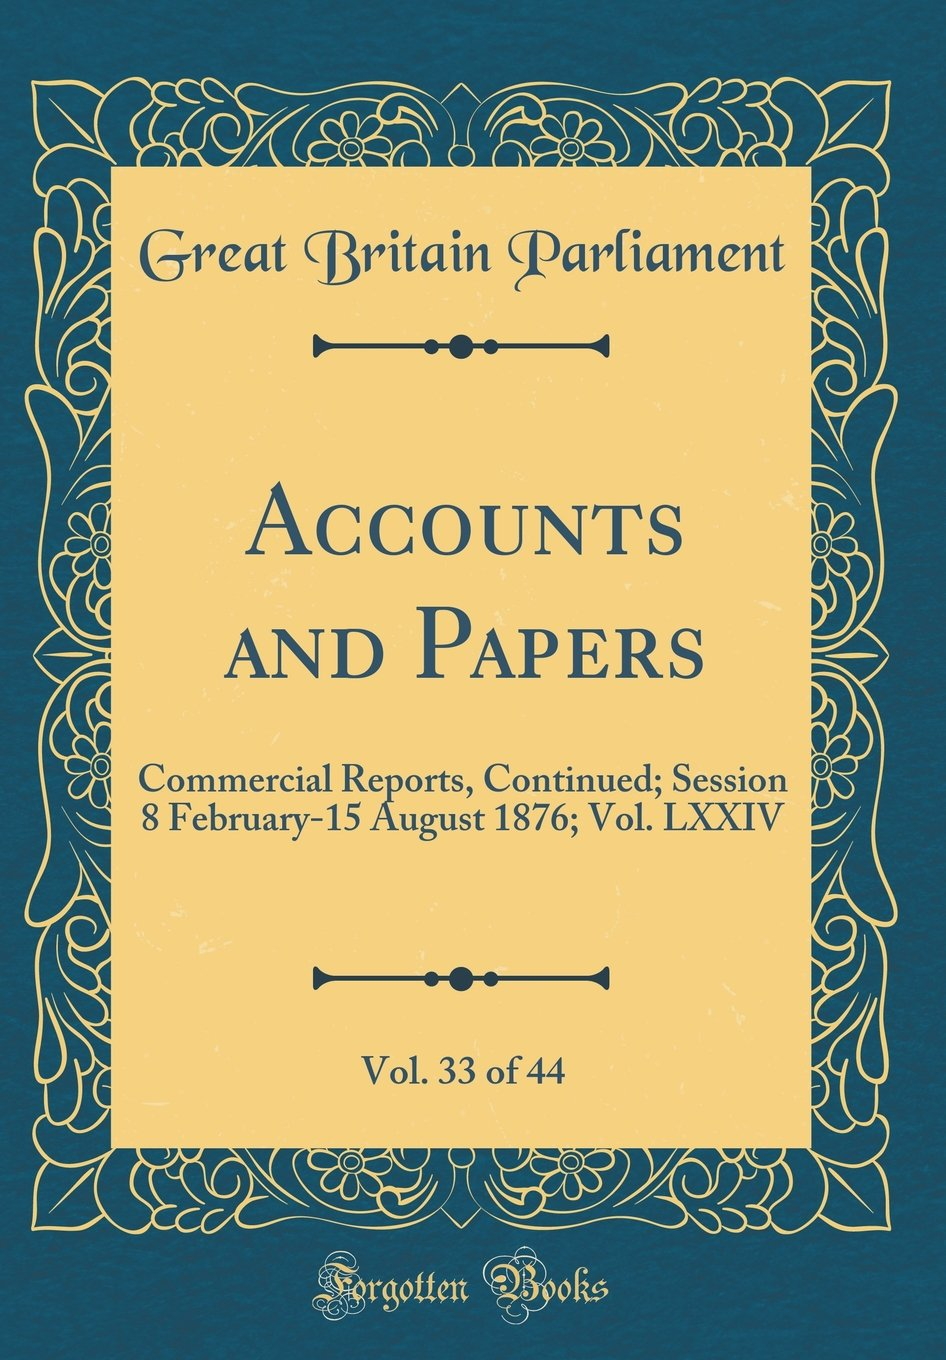 Accounts and Papers, Vol. 33 of 44: Commercial Reports, Continued; Session 8 February-15 August 1876; Vol. LXXIV (Classic Reprint) PDF